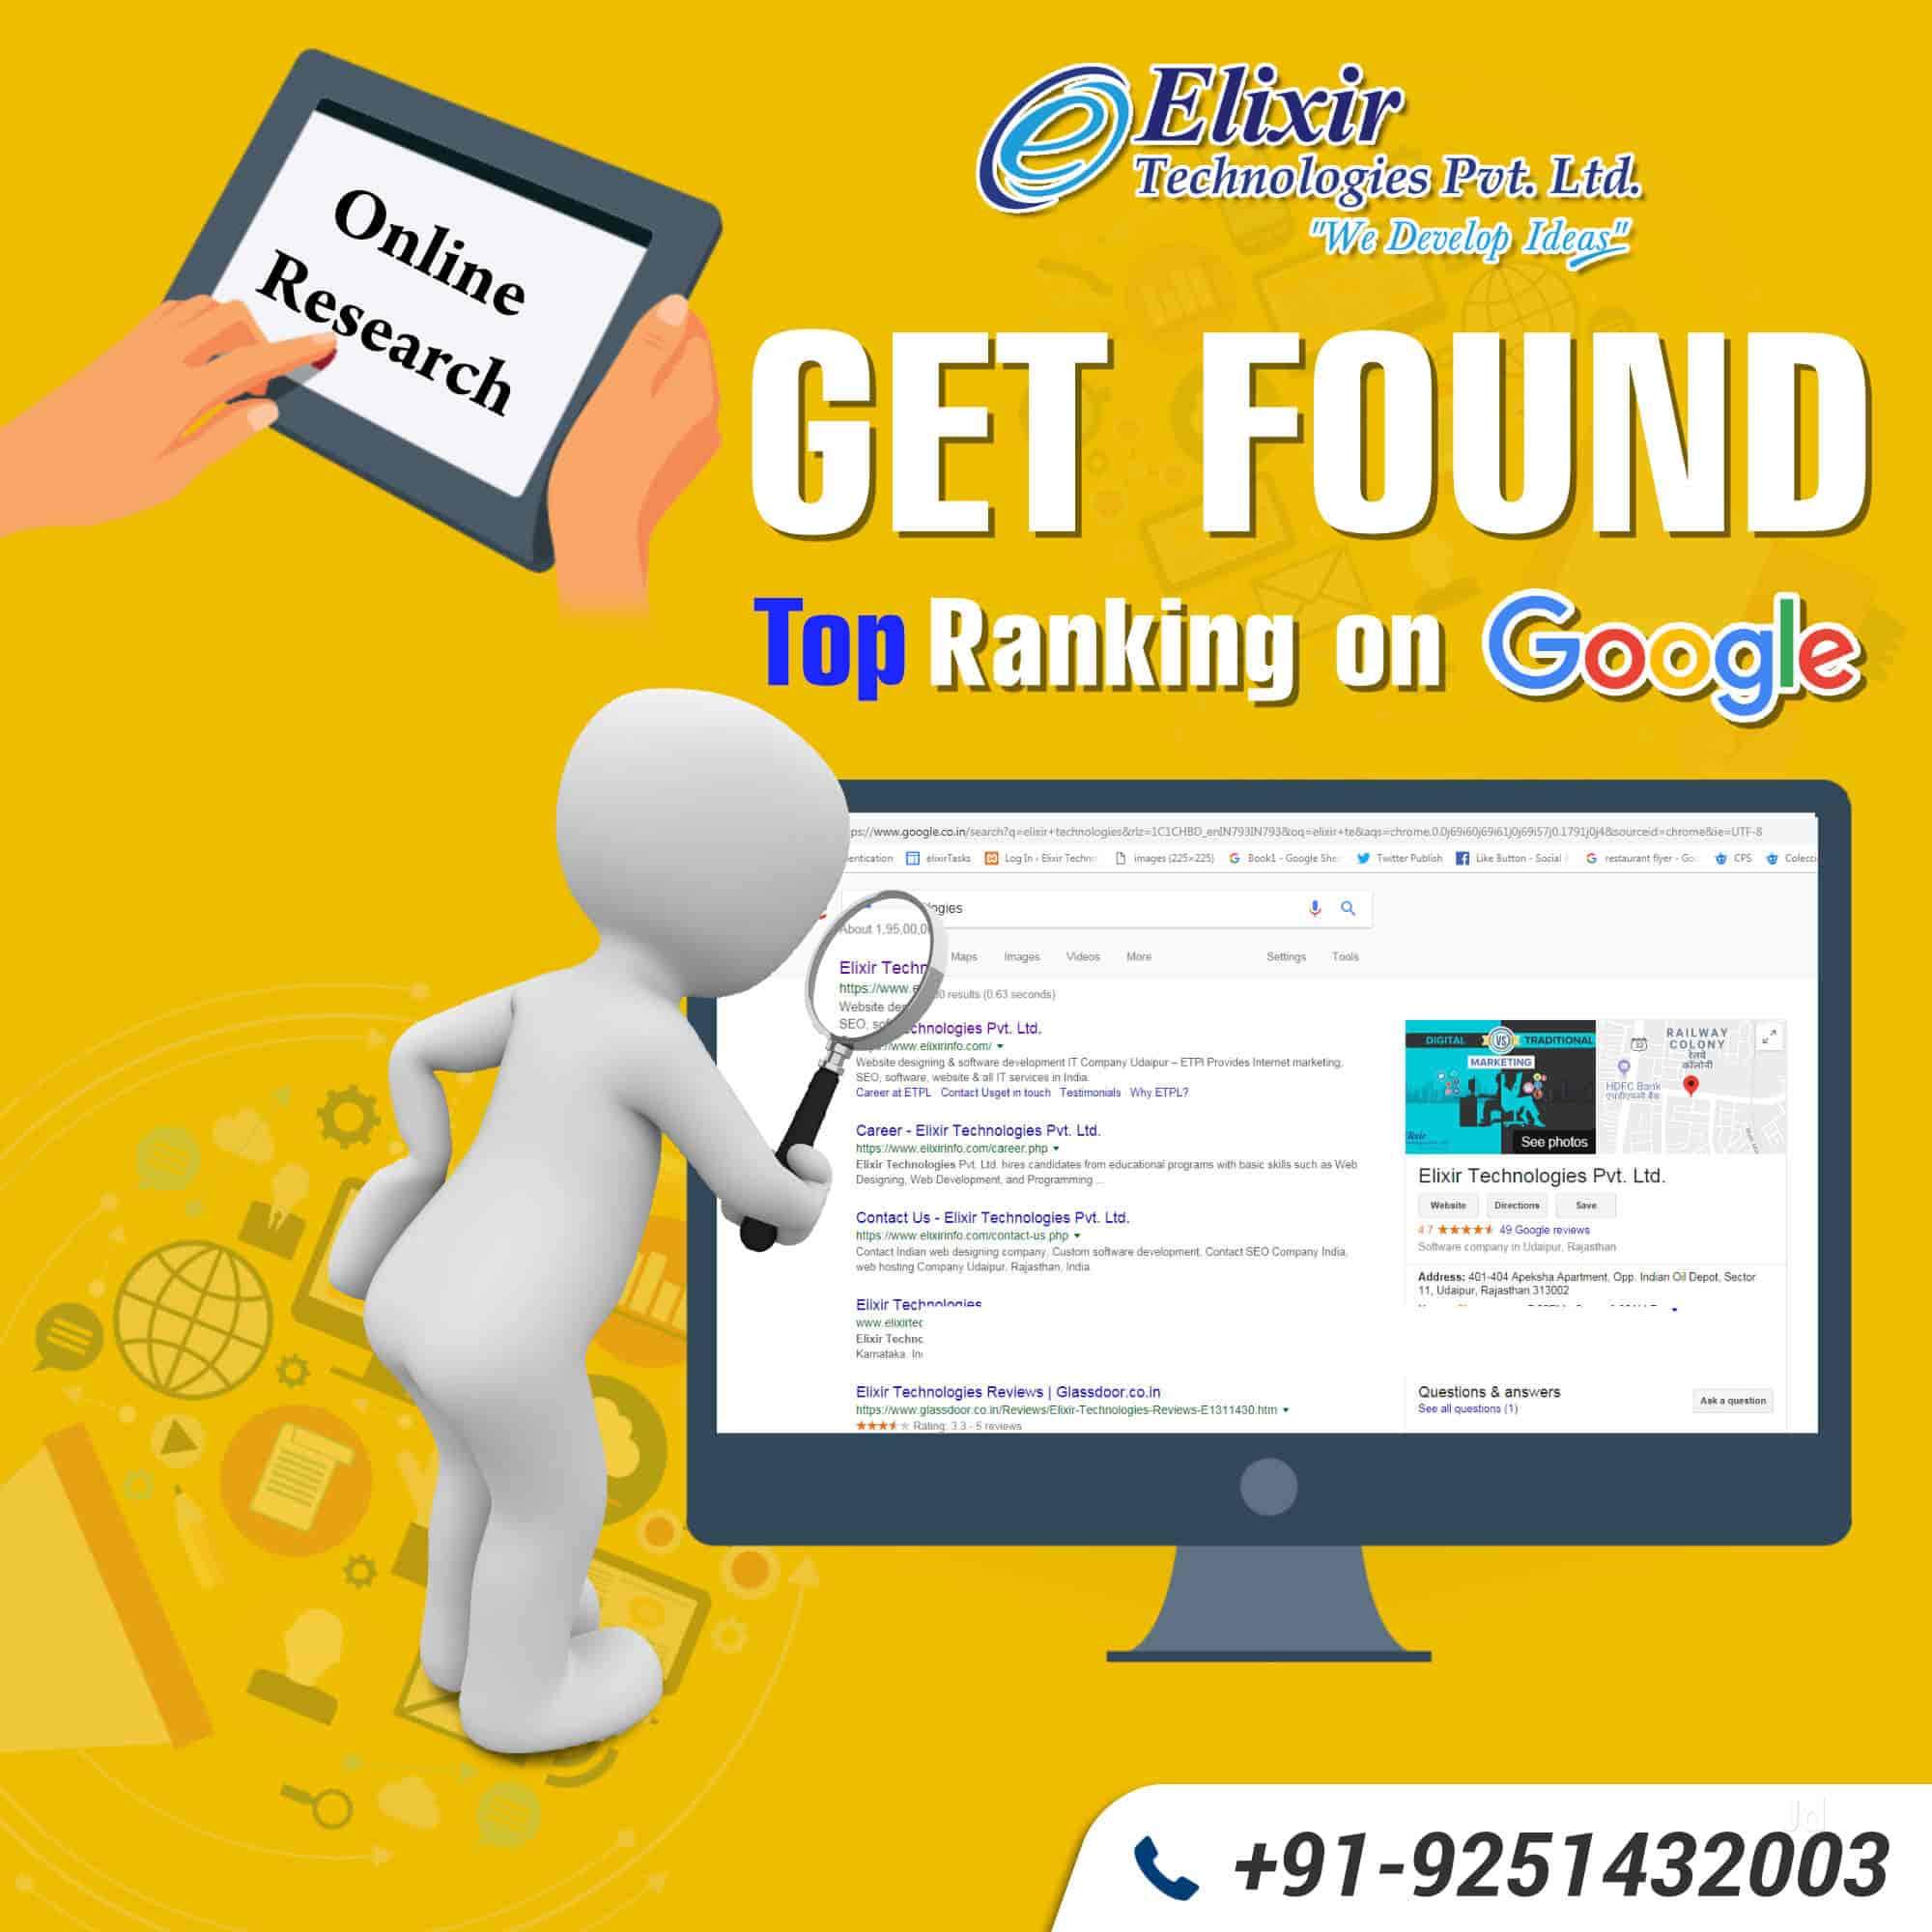 Elixir Technologies Pvt Ltd, Hiran Magri - Search Engine